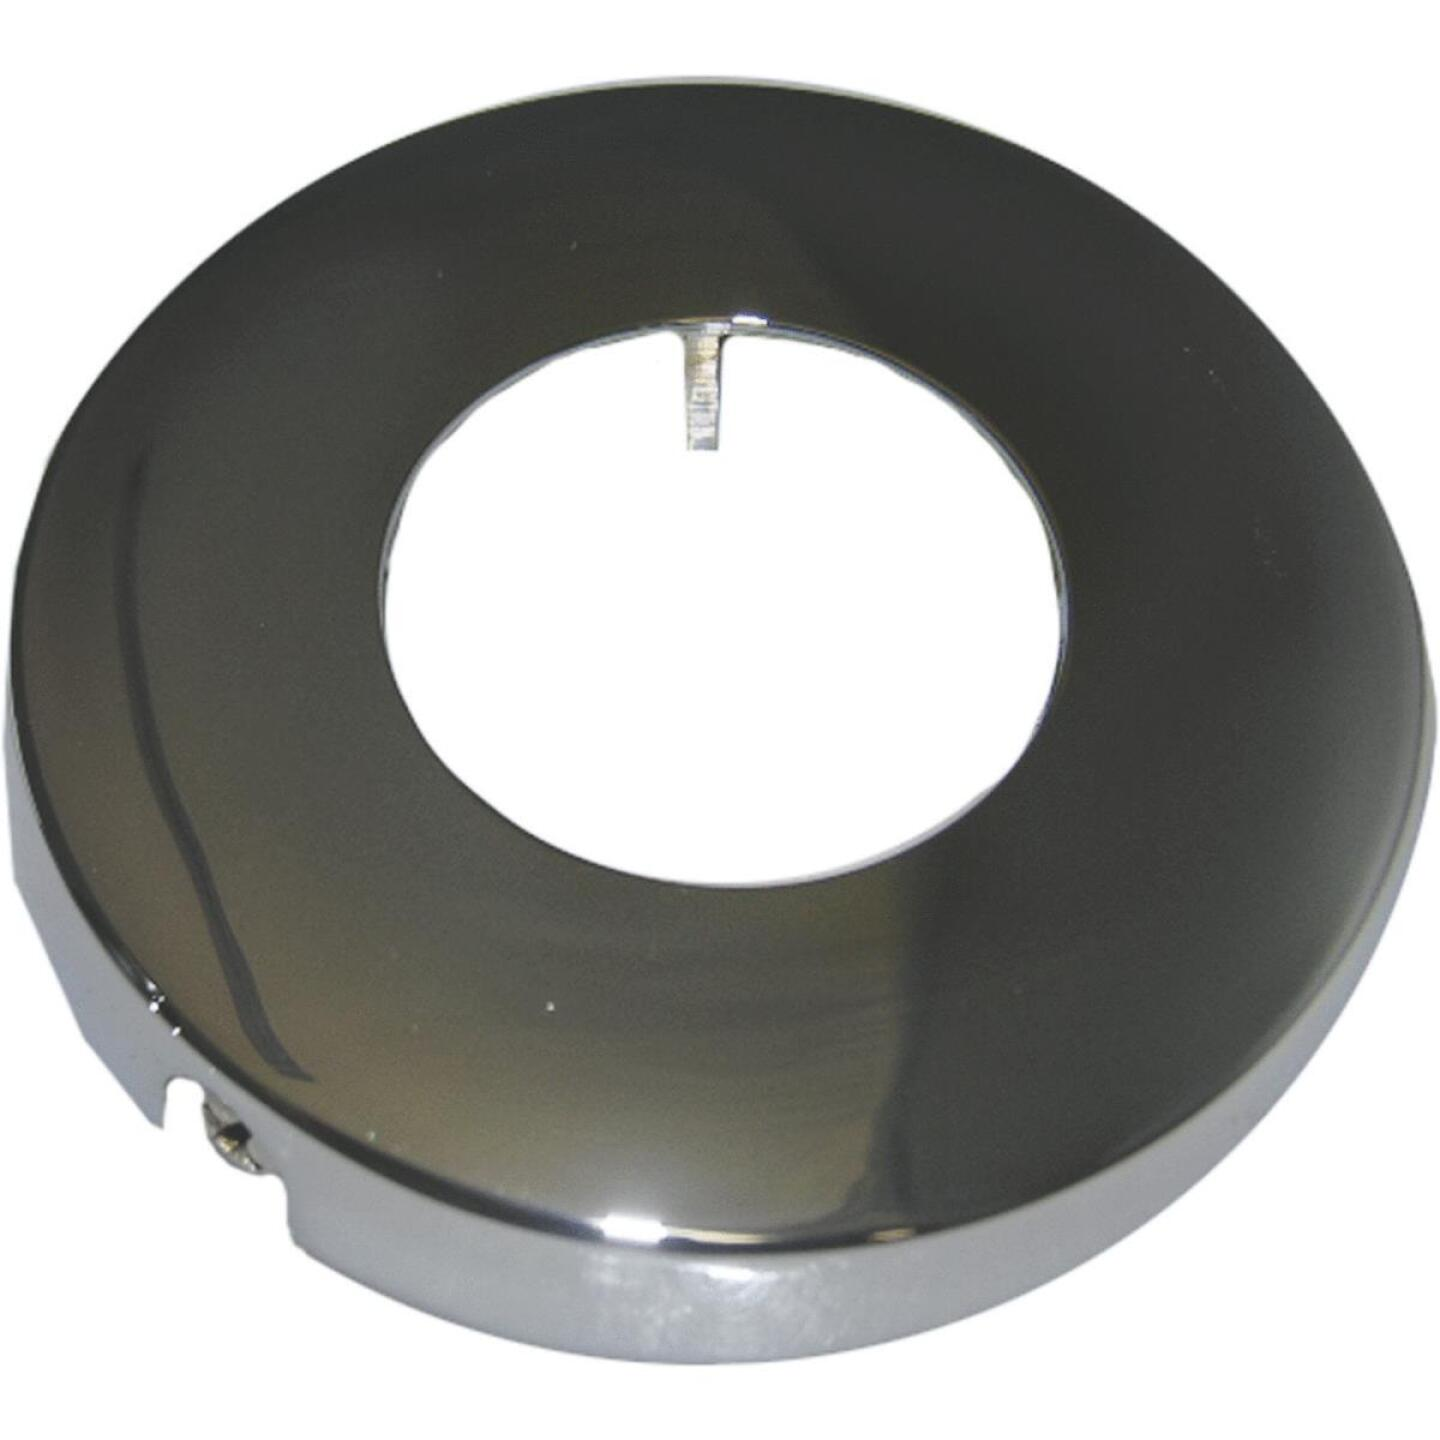 Lasco Metal Tub & Shower Crown Imperial Flange Image 1